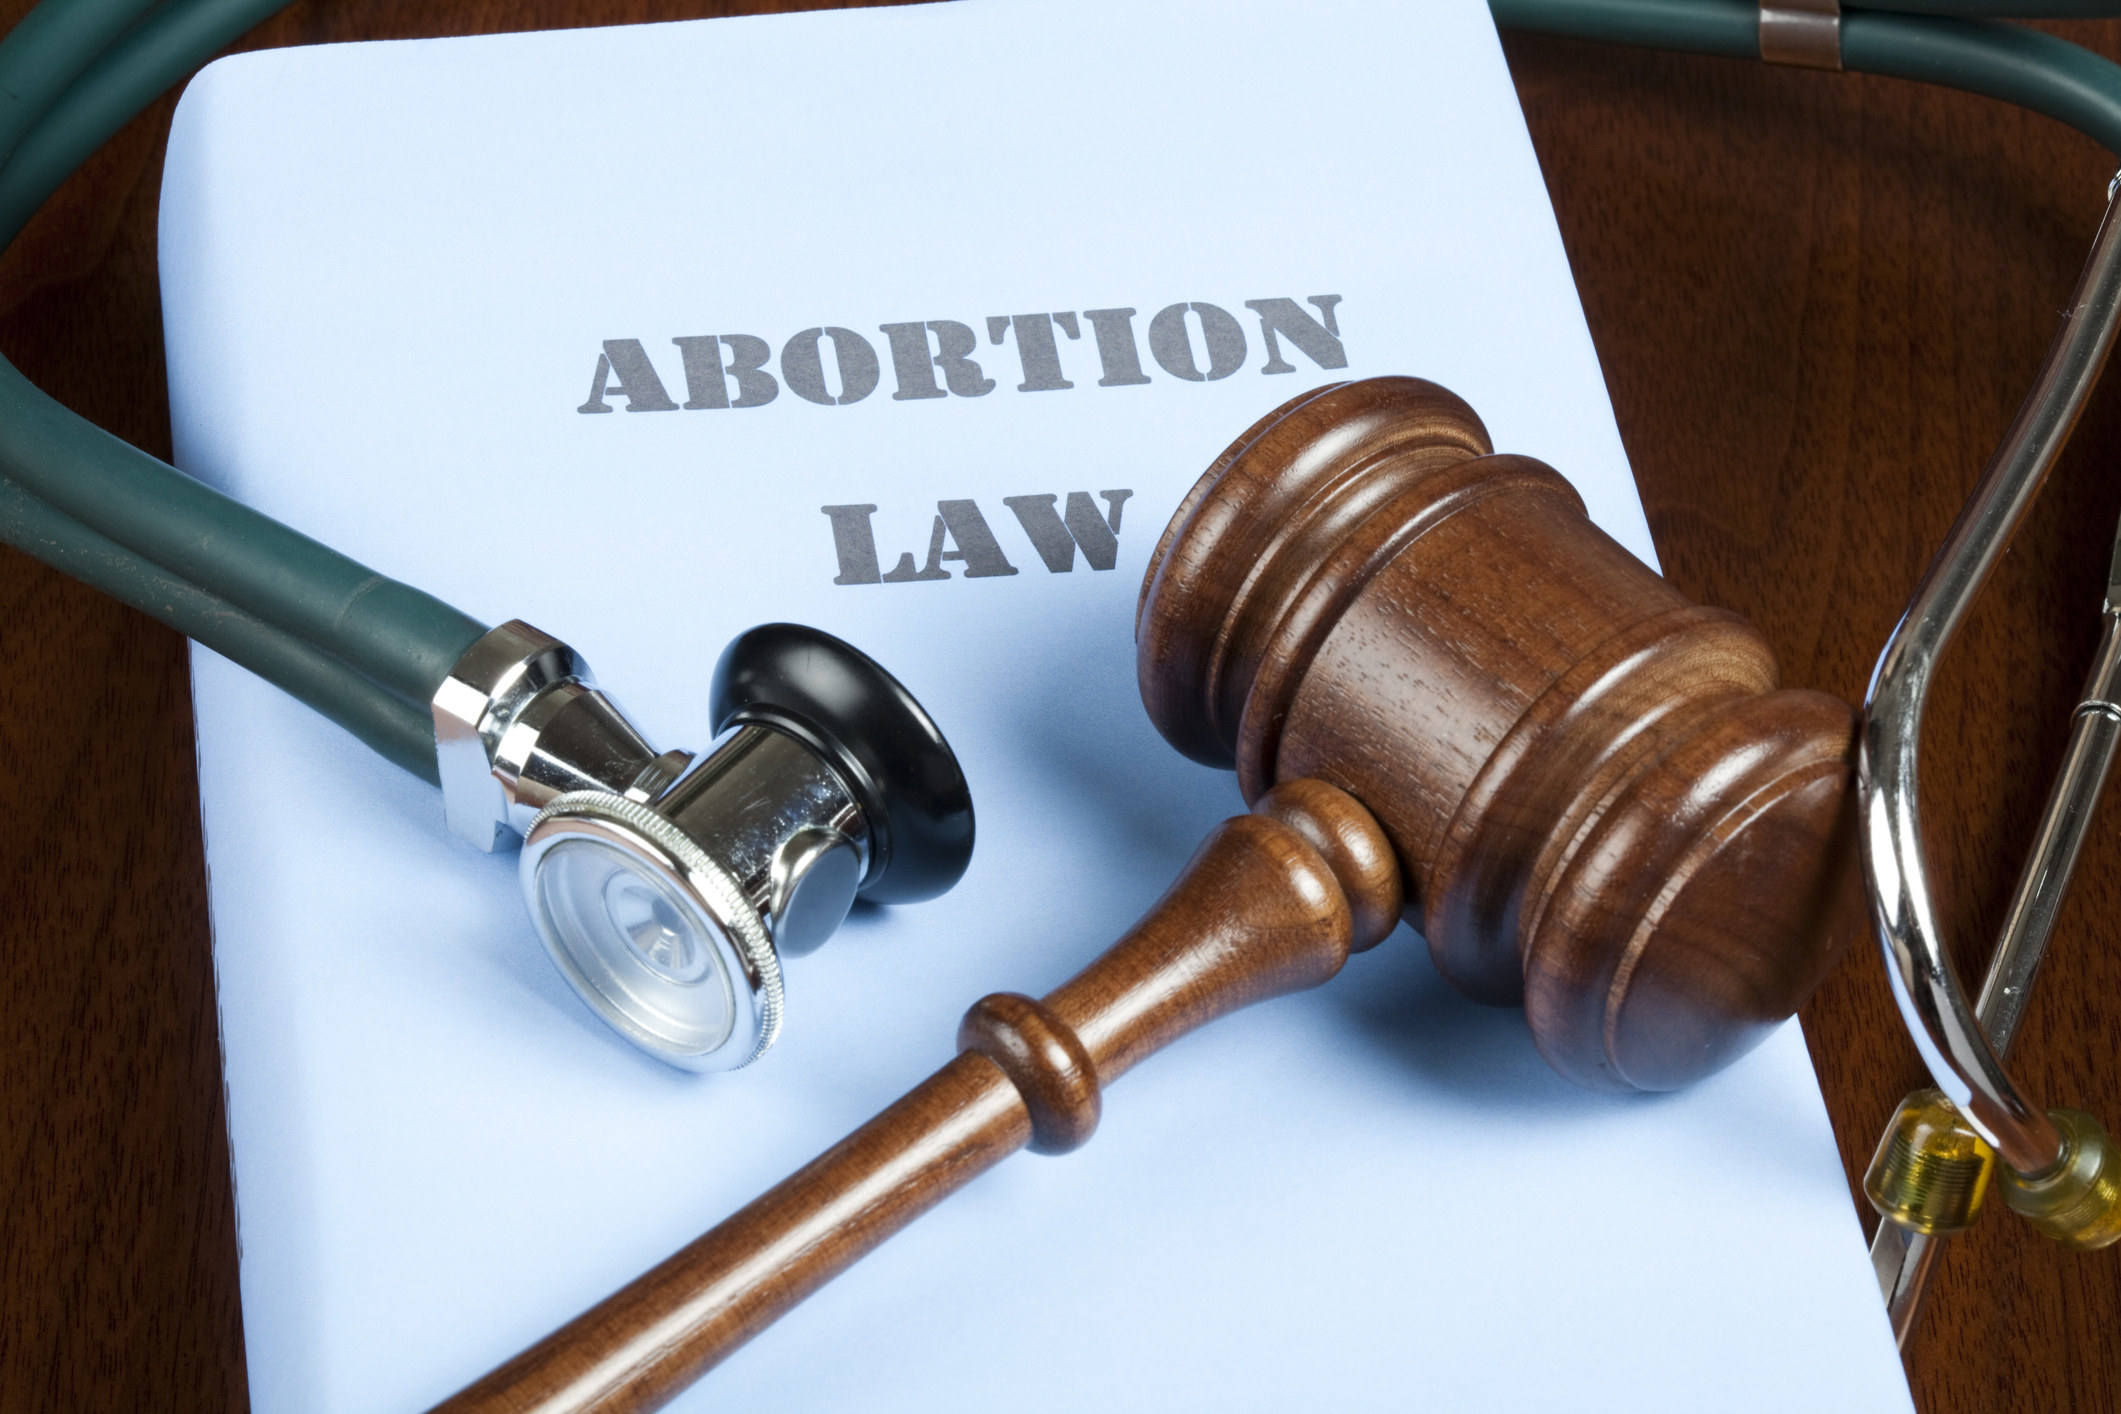 Text of abortion law with gavel and stethoscope.